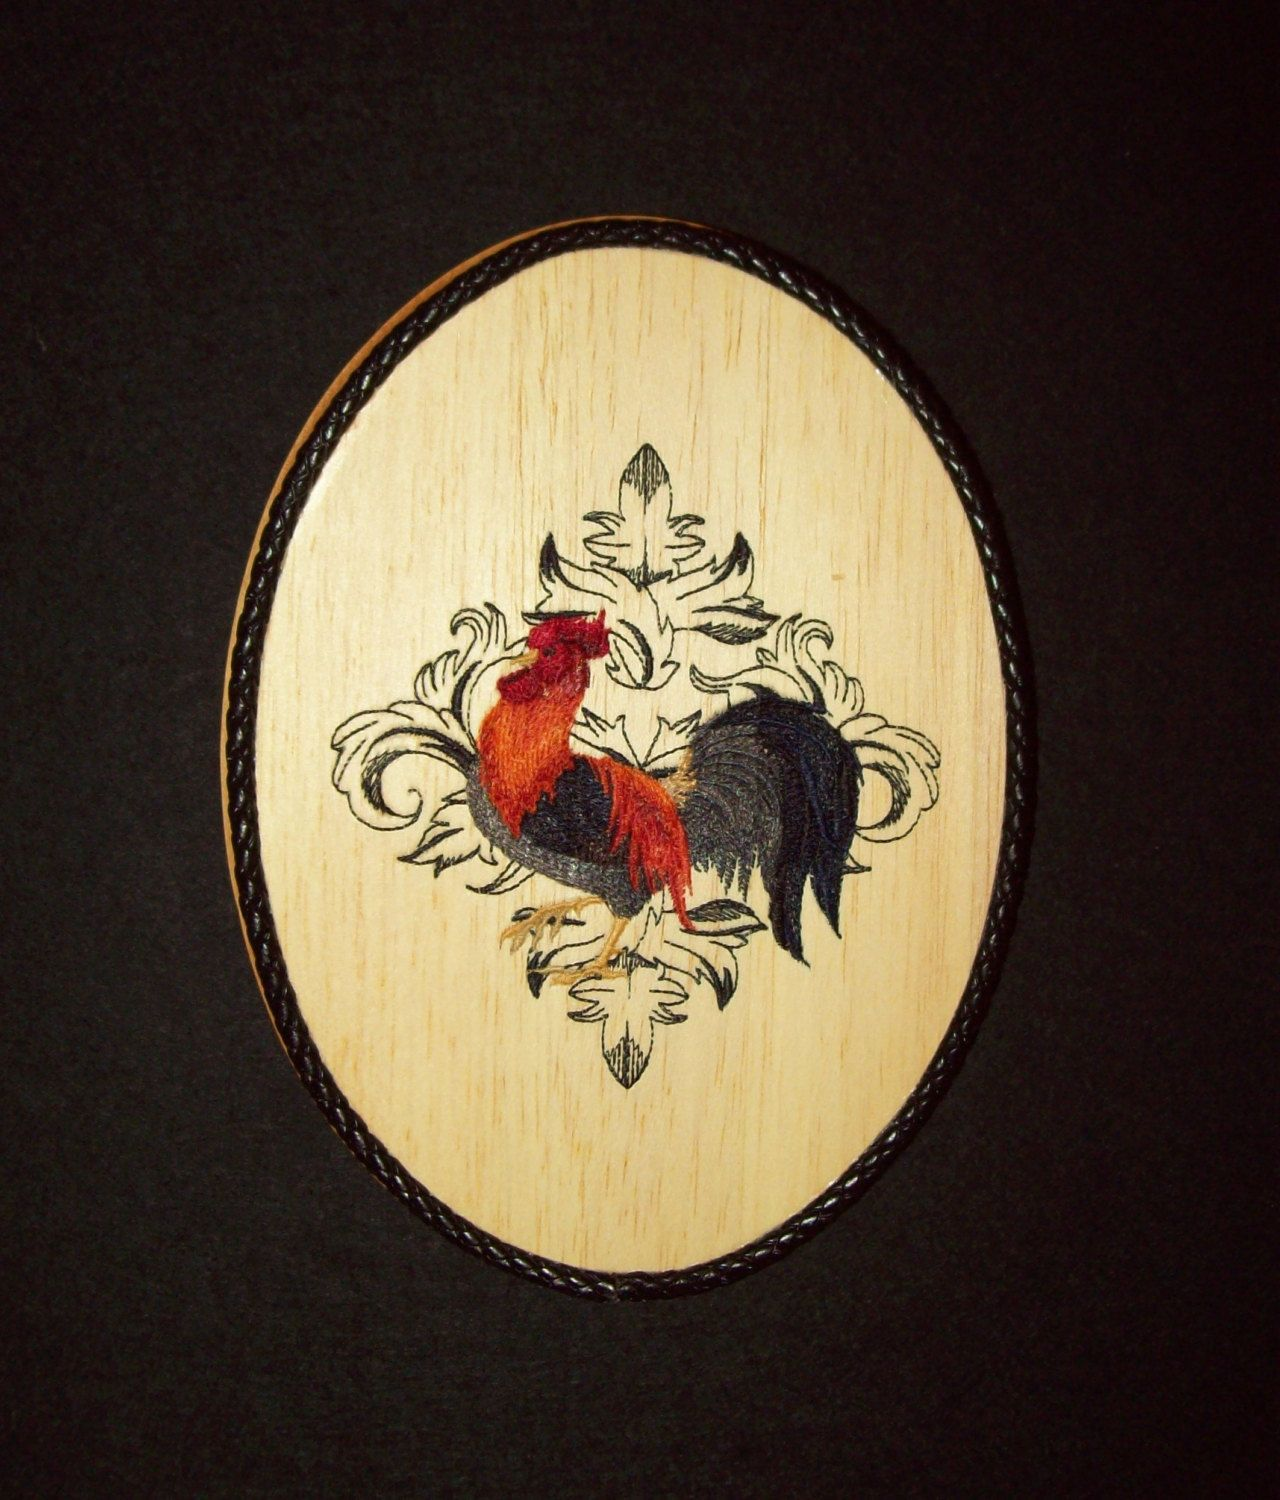 Old Fashioned Rooster Wall Decor Plates Images - The Wall Art ...